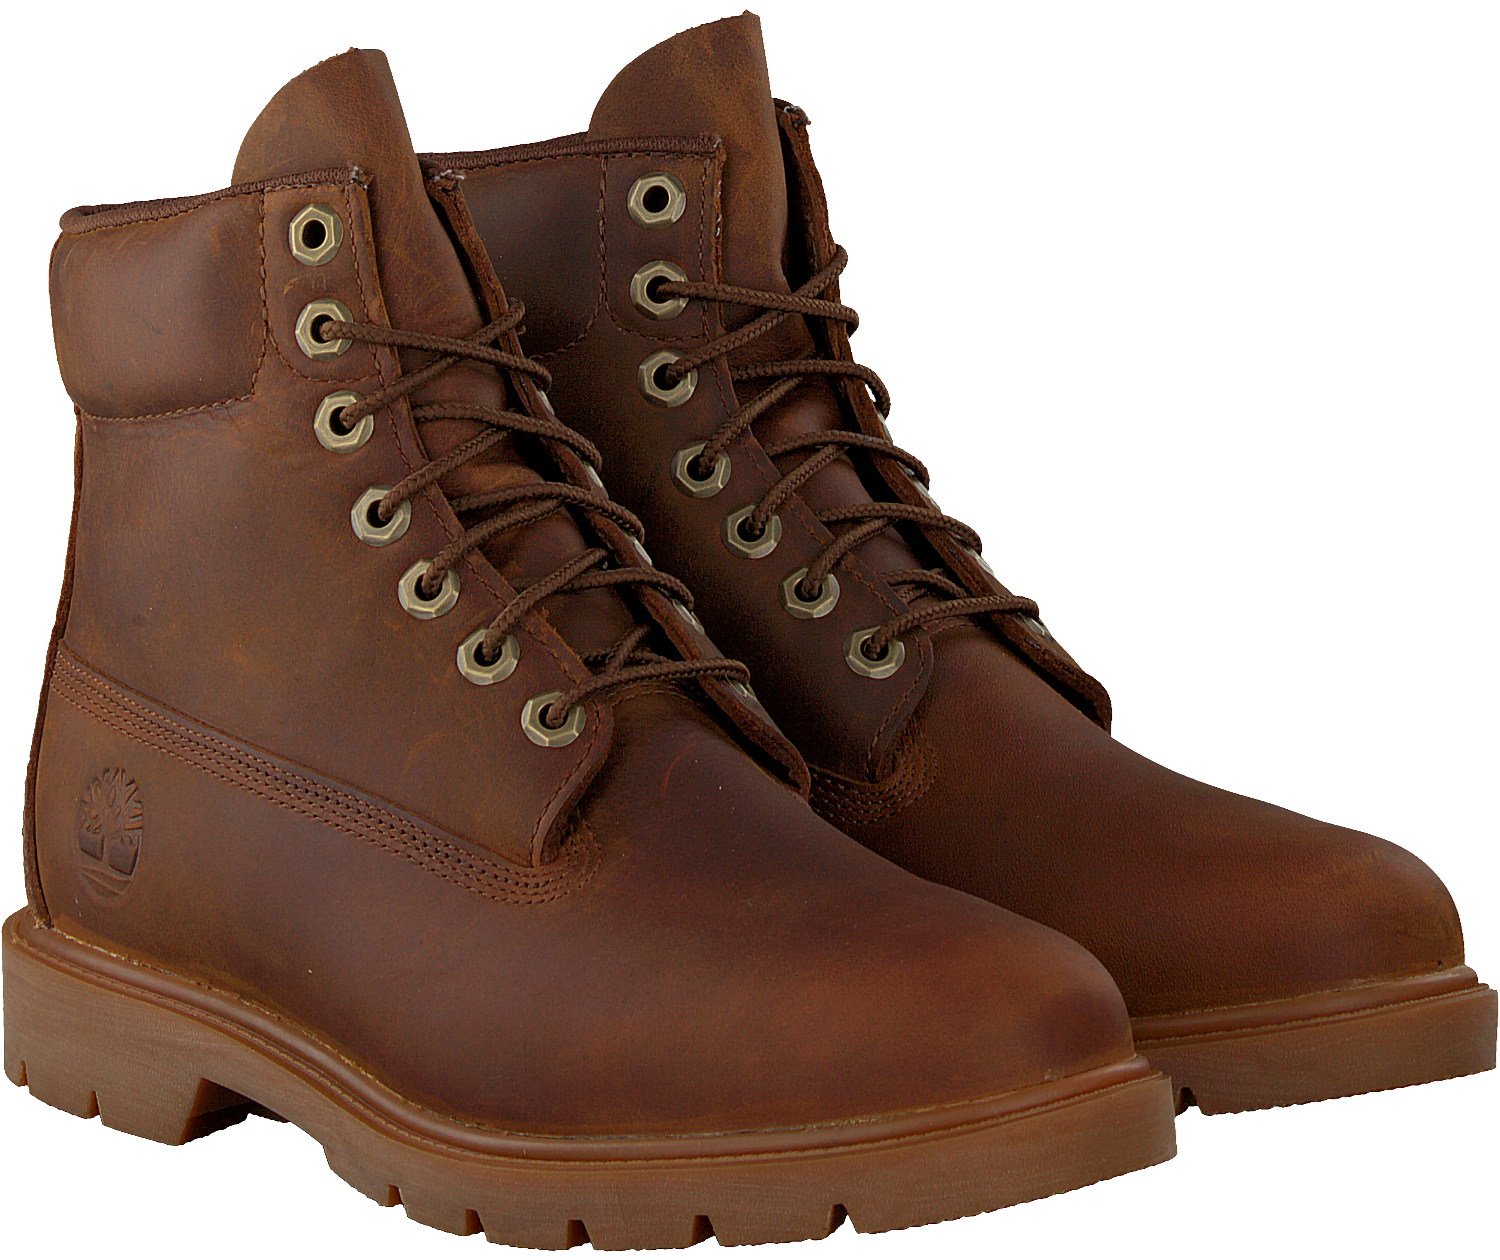 Bruine TIMBERLAND Veterboots 6INCH BASIC BOOT NONCONTRAST